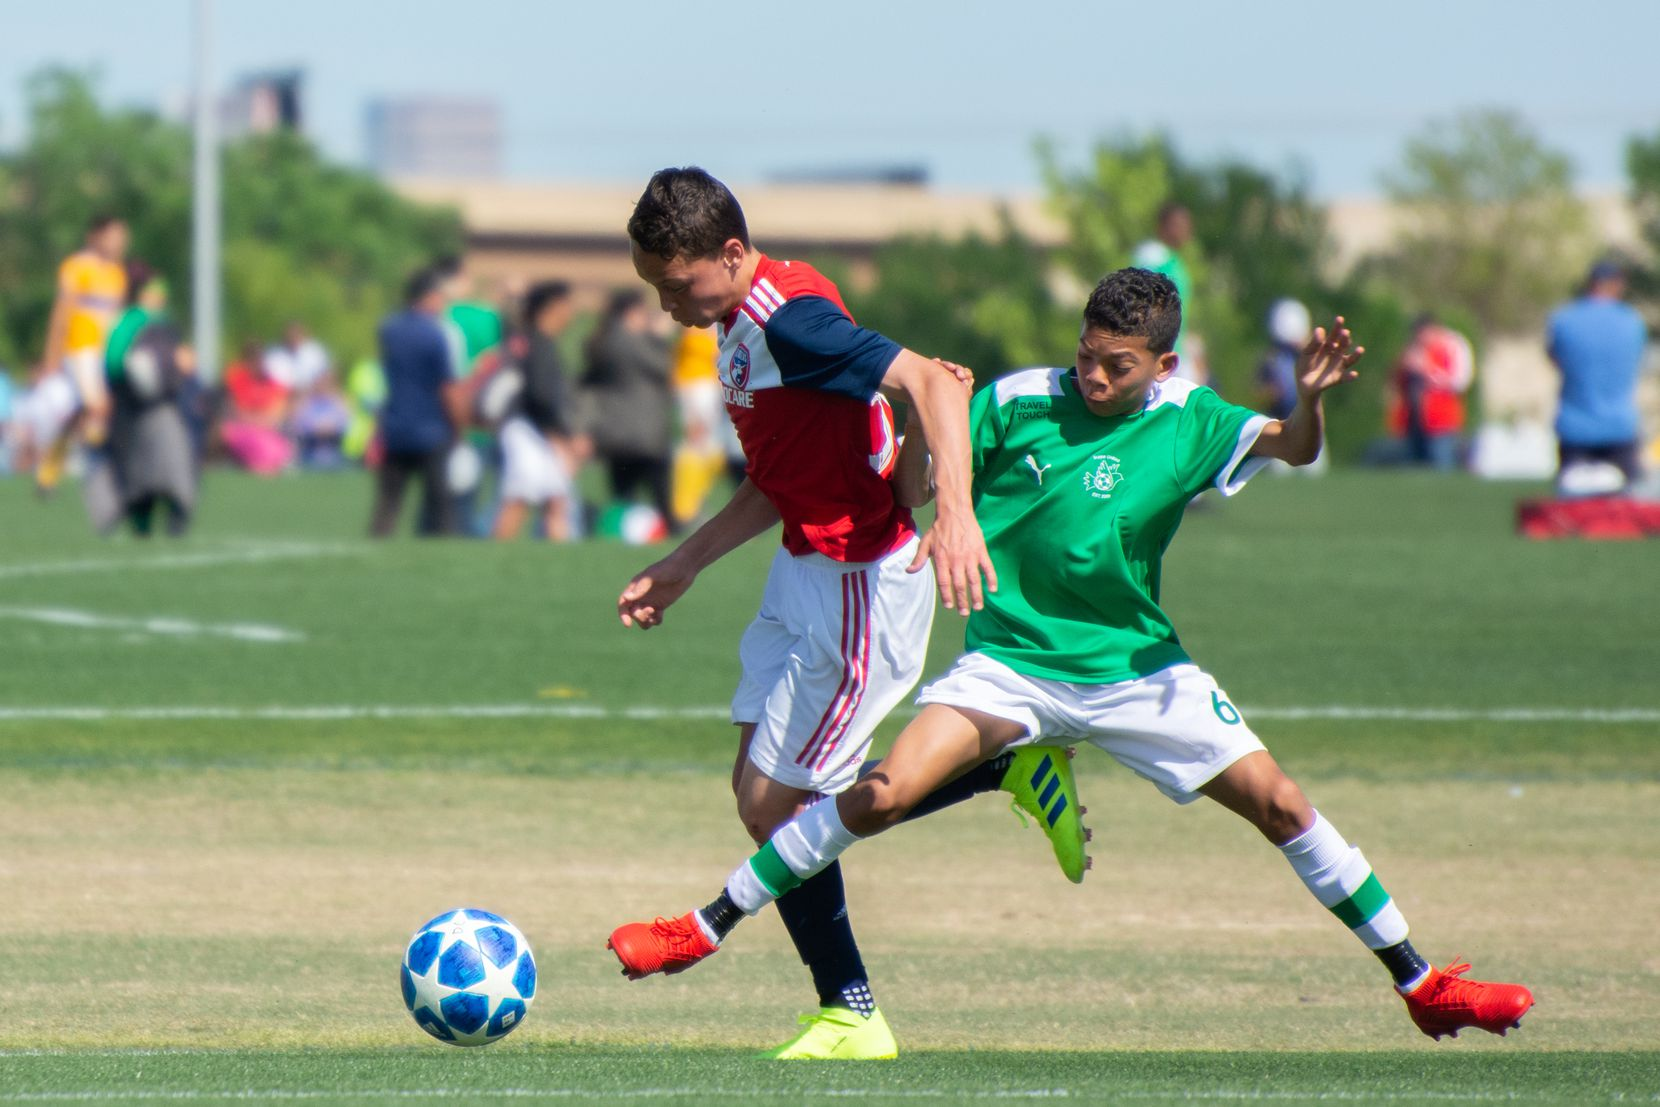 Cistian Gallo of the FCDallas Academy U14s takes on Ikapa United in the 2019 Dallas Cup Super 14s.